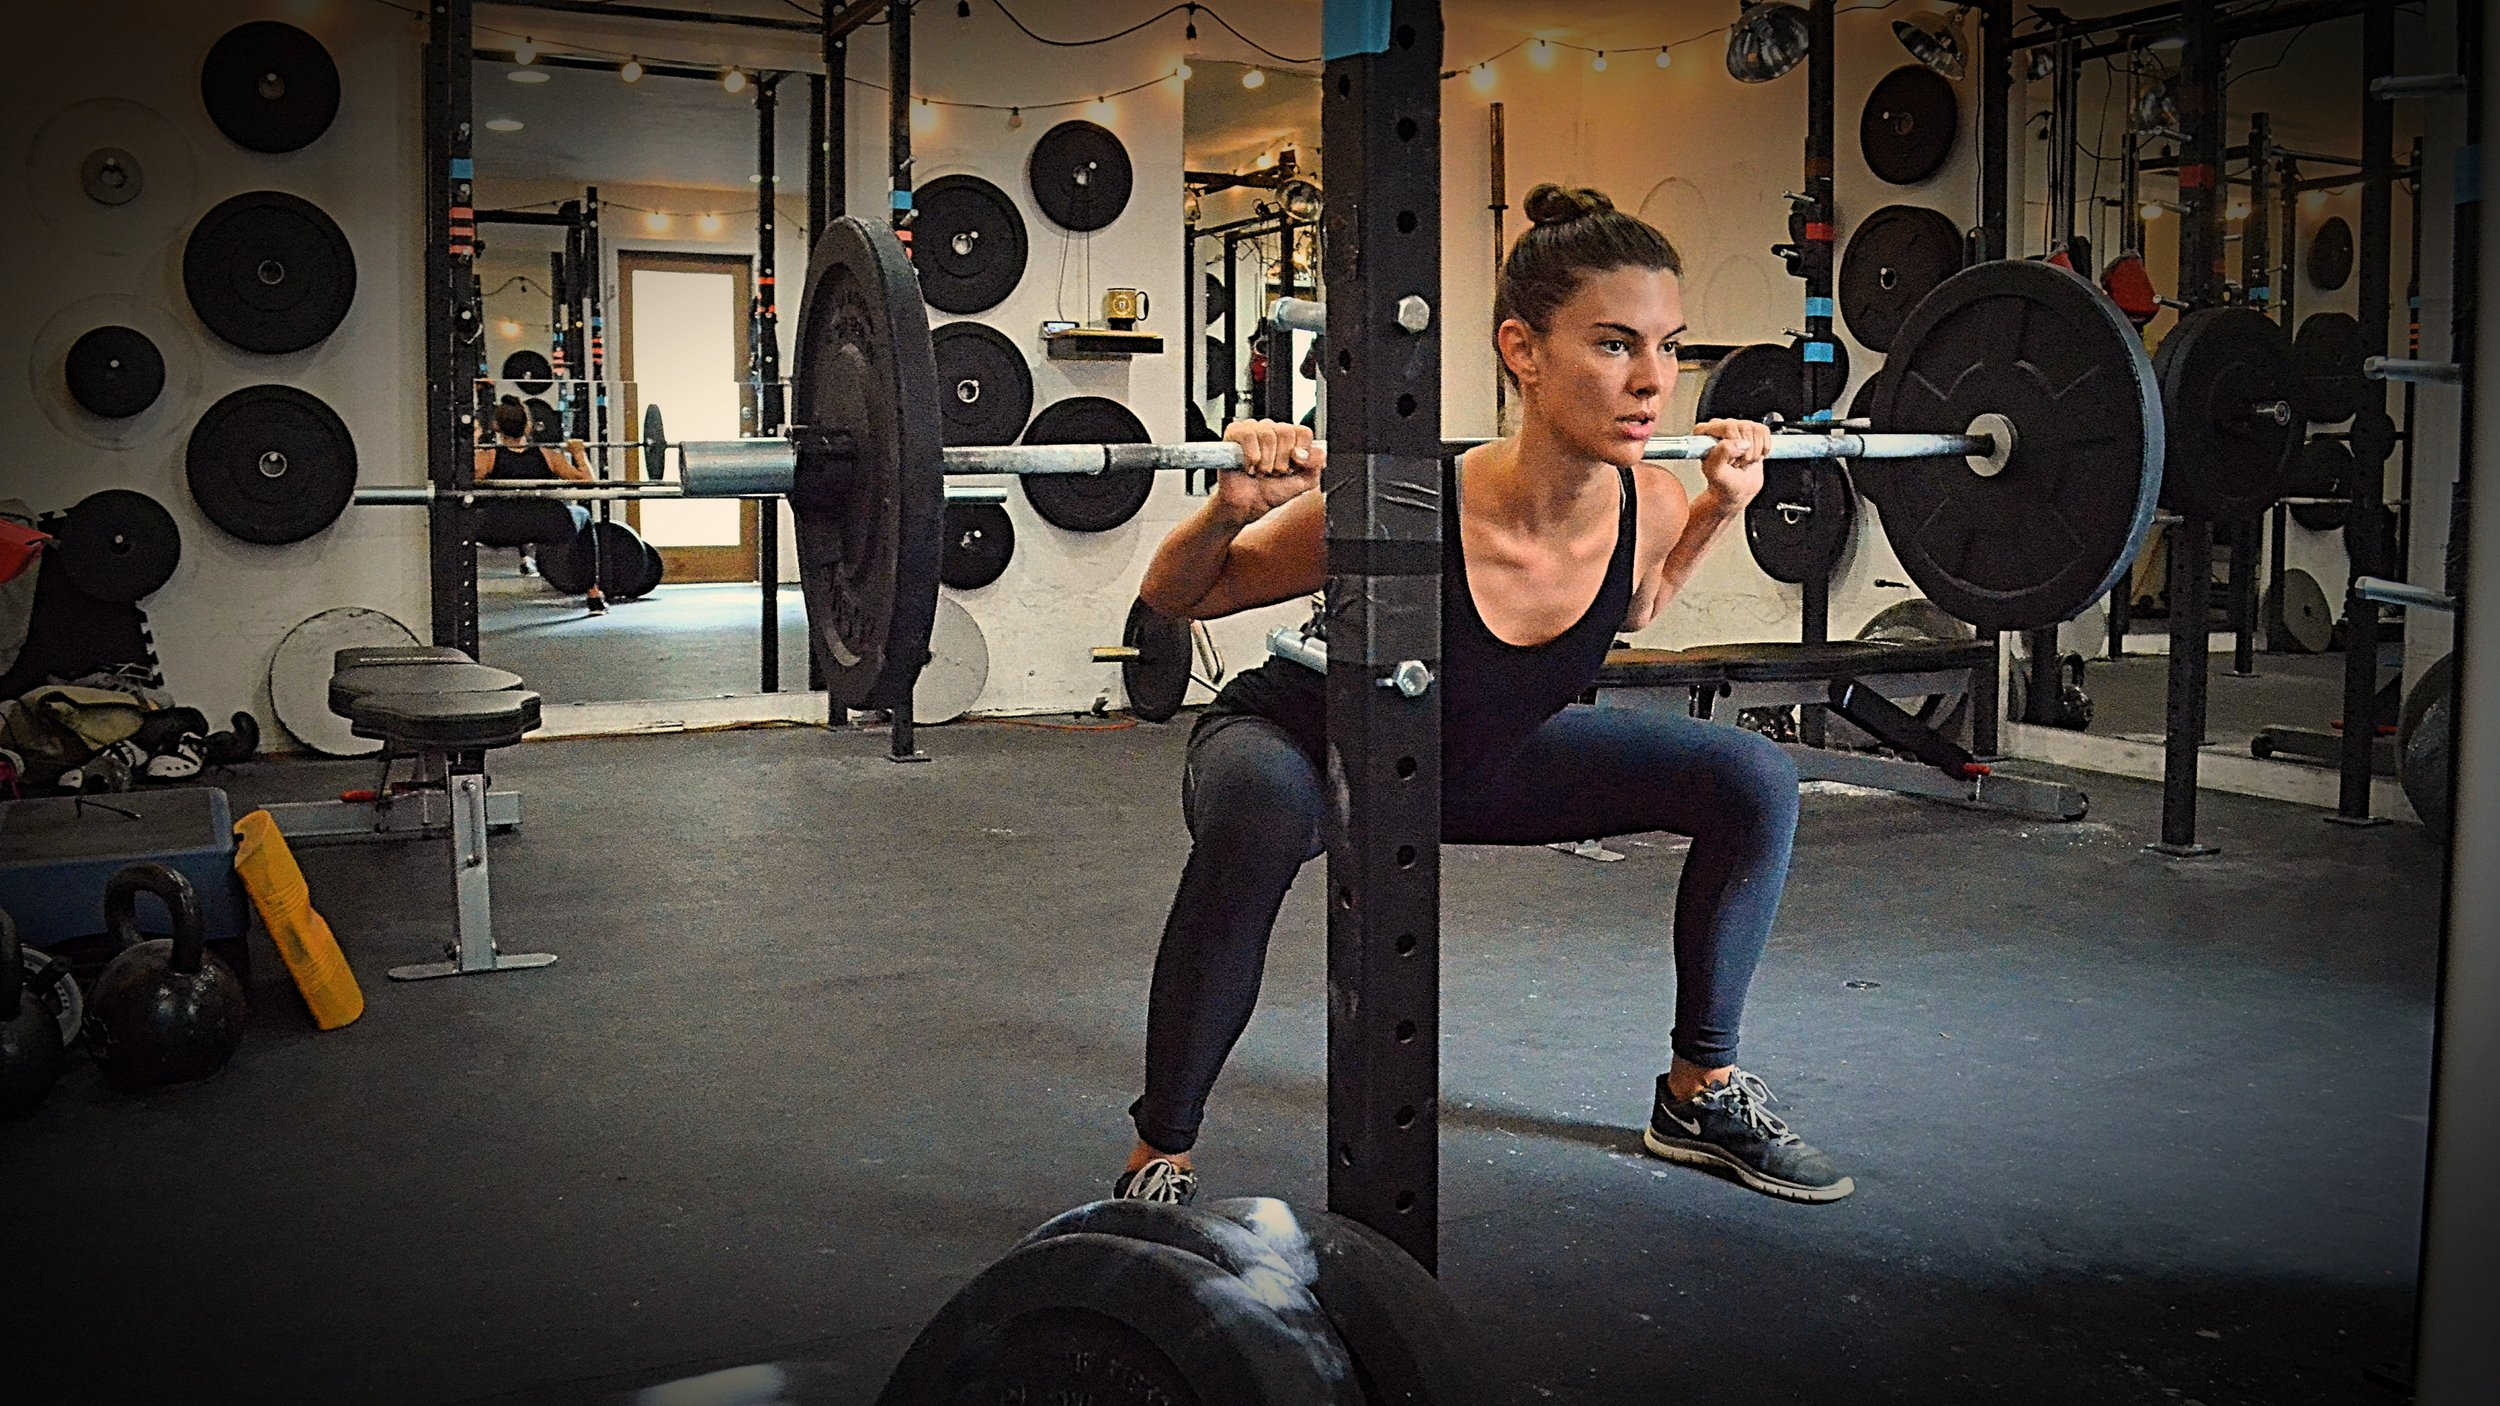 PERSONAL TRAINER LOS ANGELES